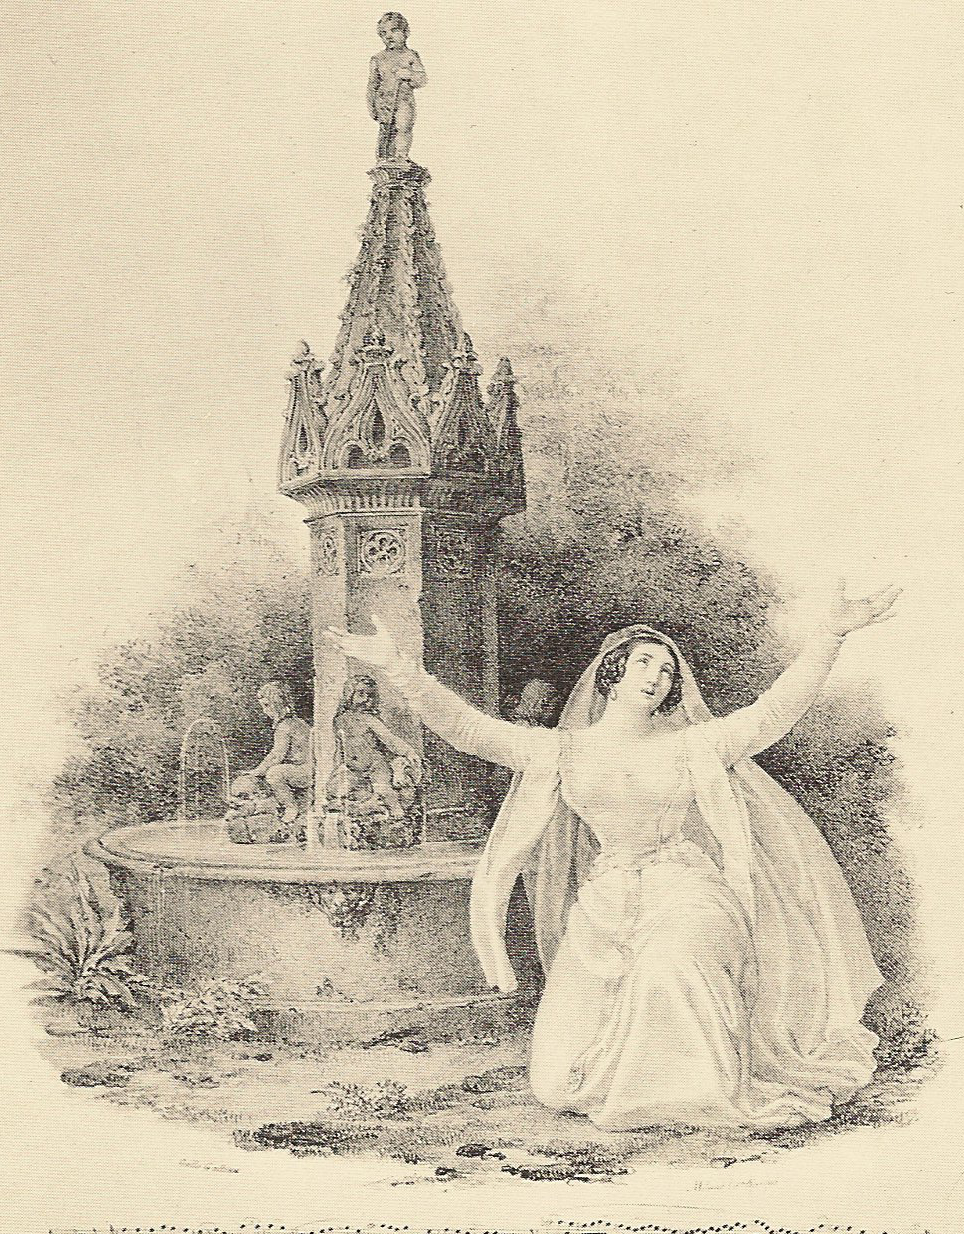 Henriette Meric-Lalande as Alaide in the original 1829 production of La Straniera. Image from public domain via Wikipedia.